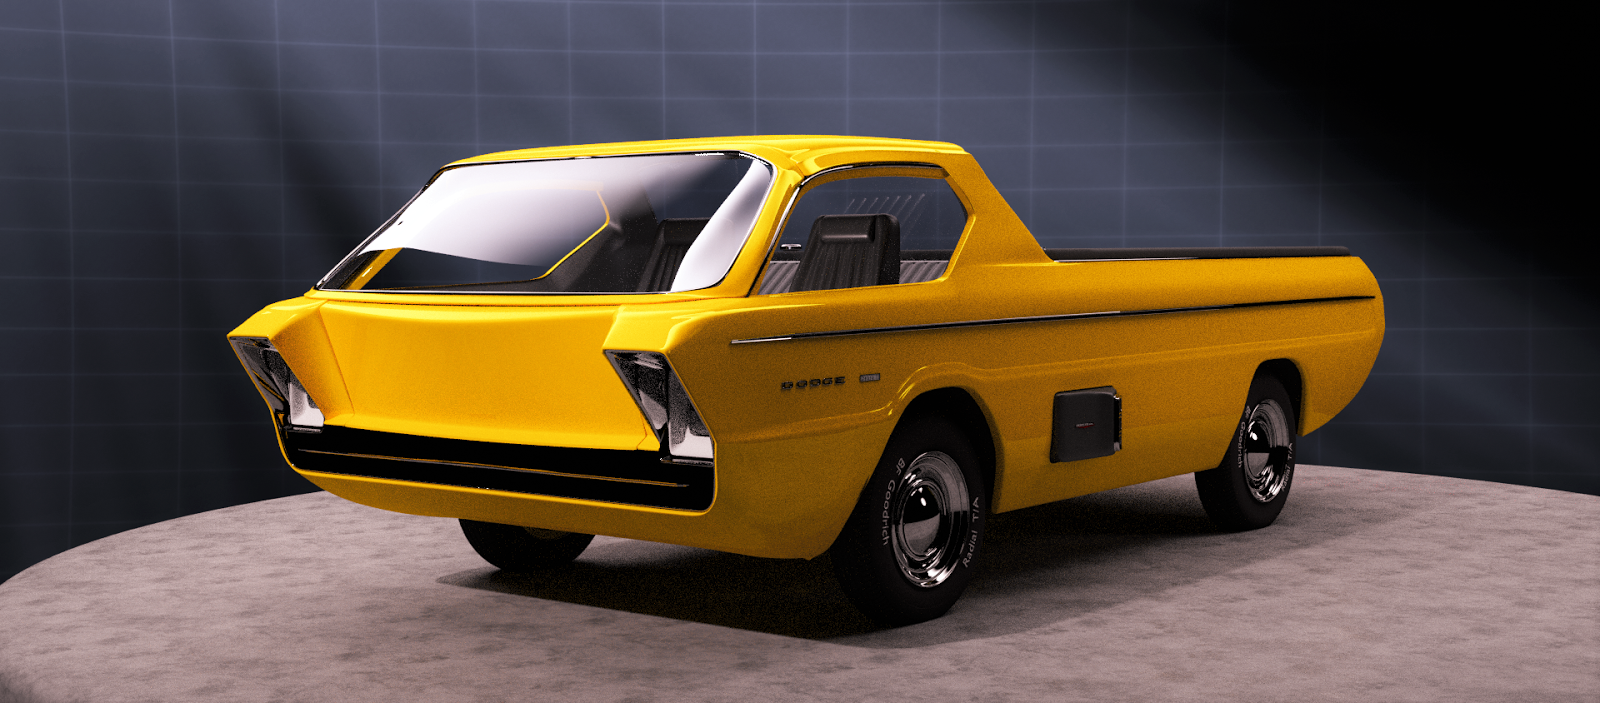 The Tinkers Workshop: 1960's Dodge Deora II Showcar Completed In Blender 3D